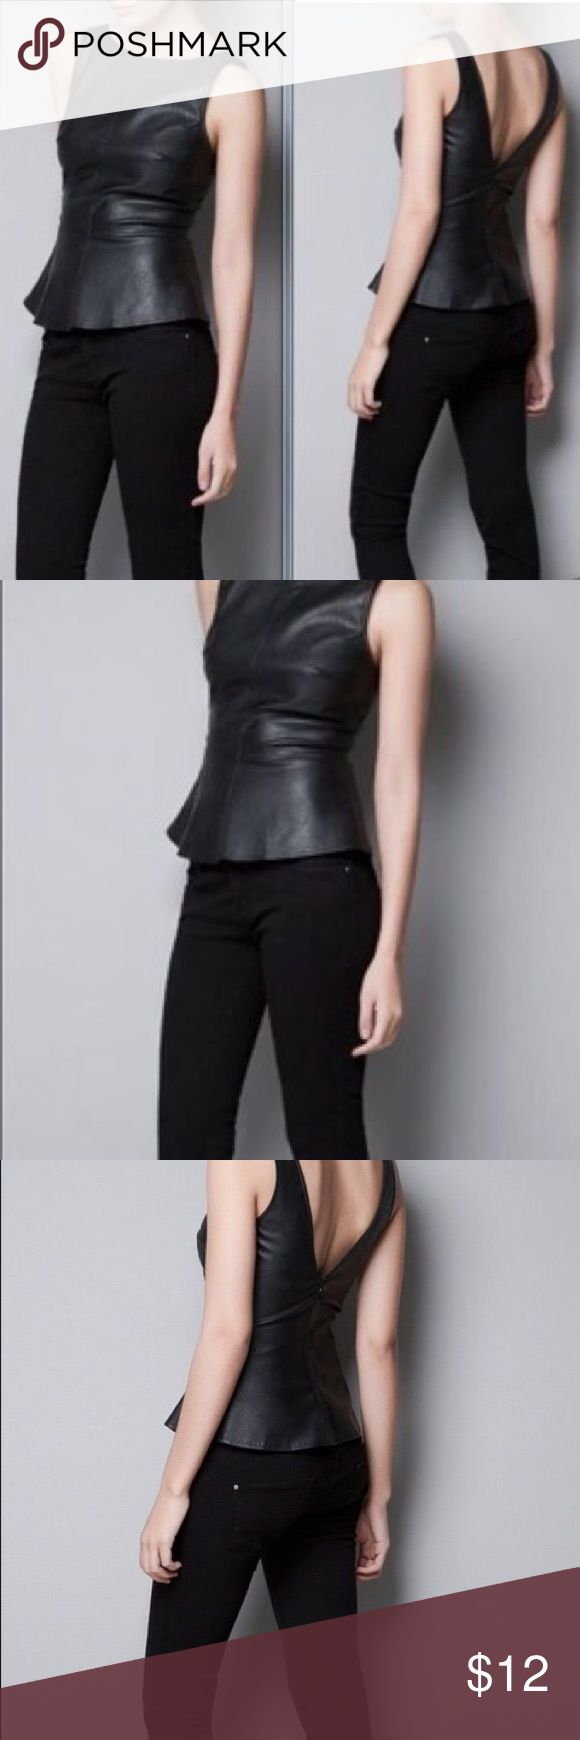 Zara Faux Leather Sleeveless Peplum Top Zara vegan leather peplum top with deep v-neck back. Structured and fitted in bust. Has normal wear. Zara Tops Blouses